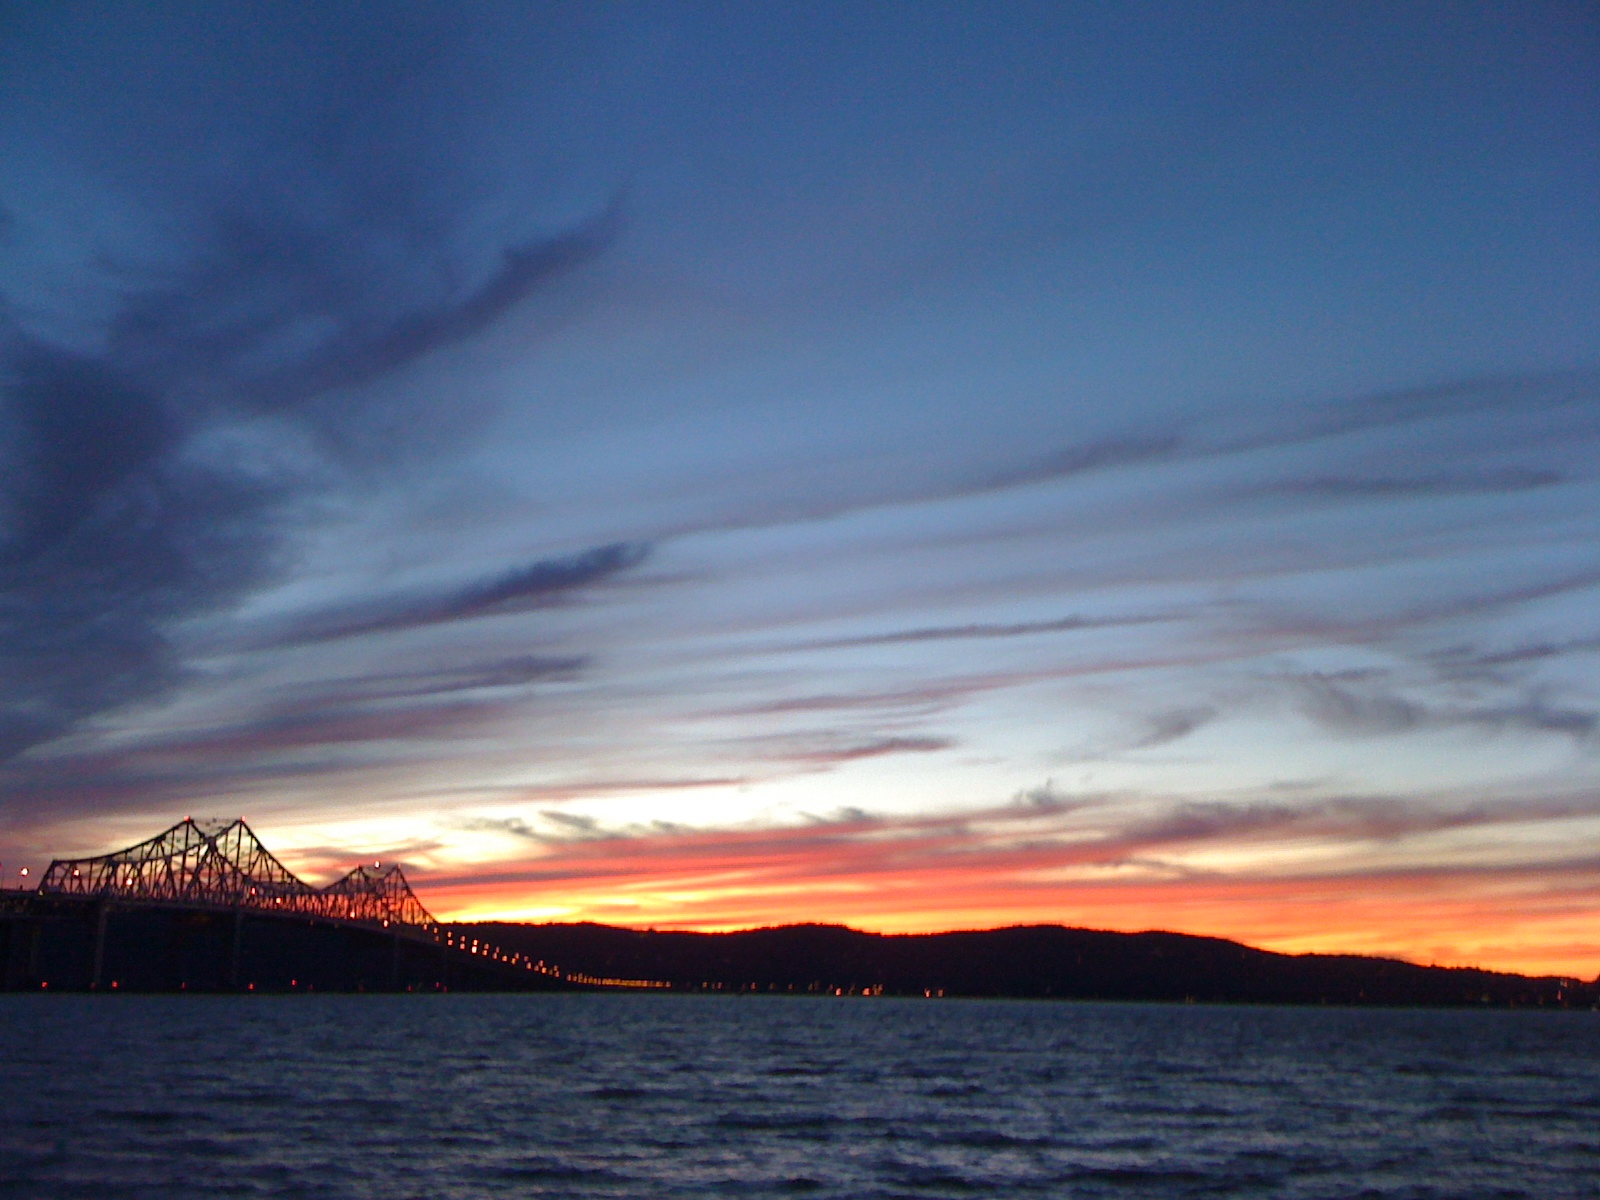 Stacy Seeley Photography Tappan Zee Bridge